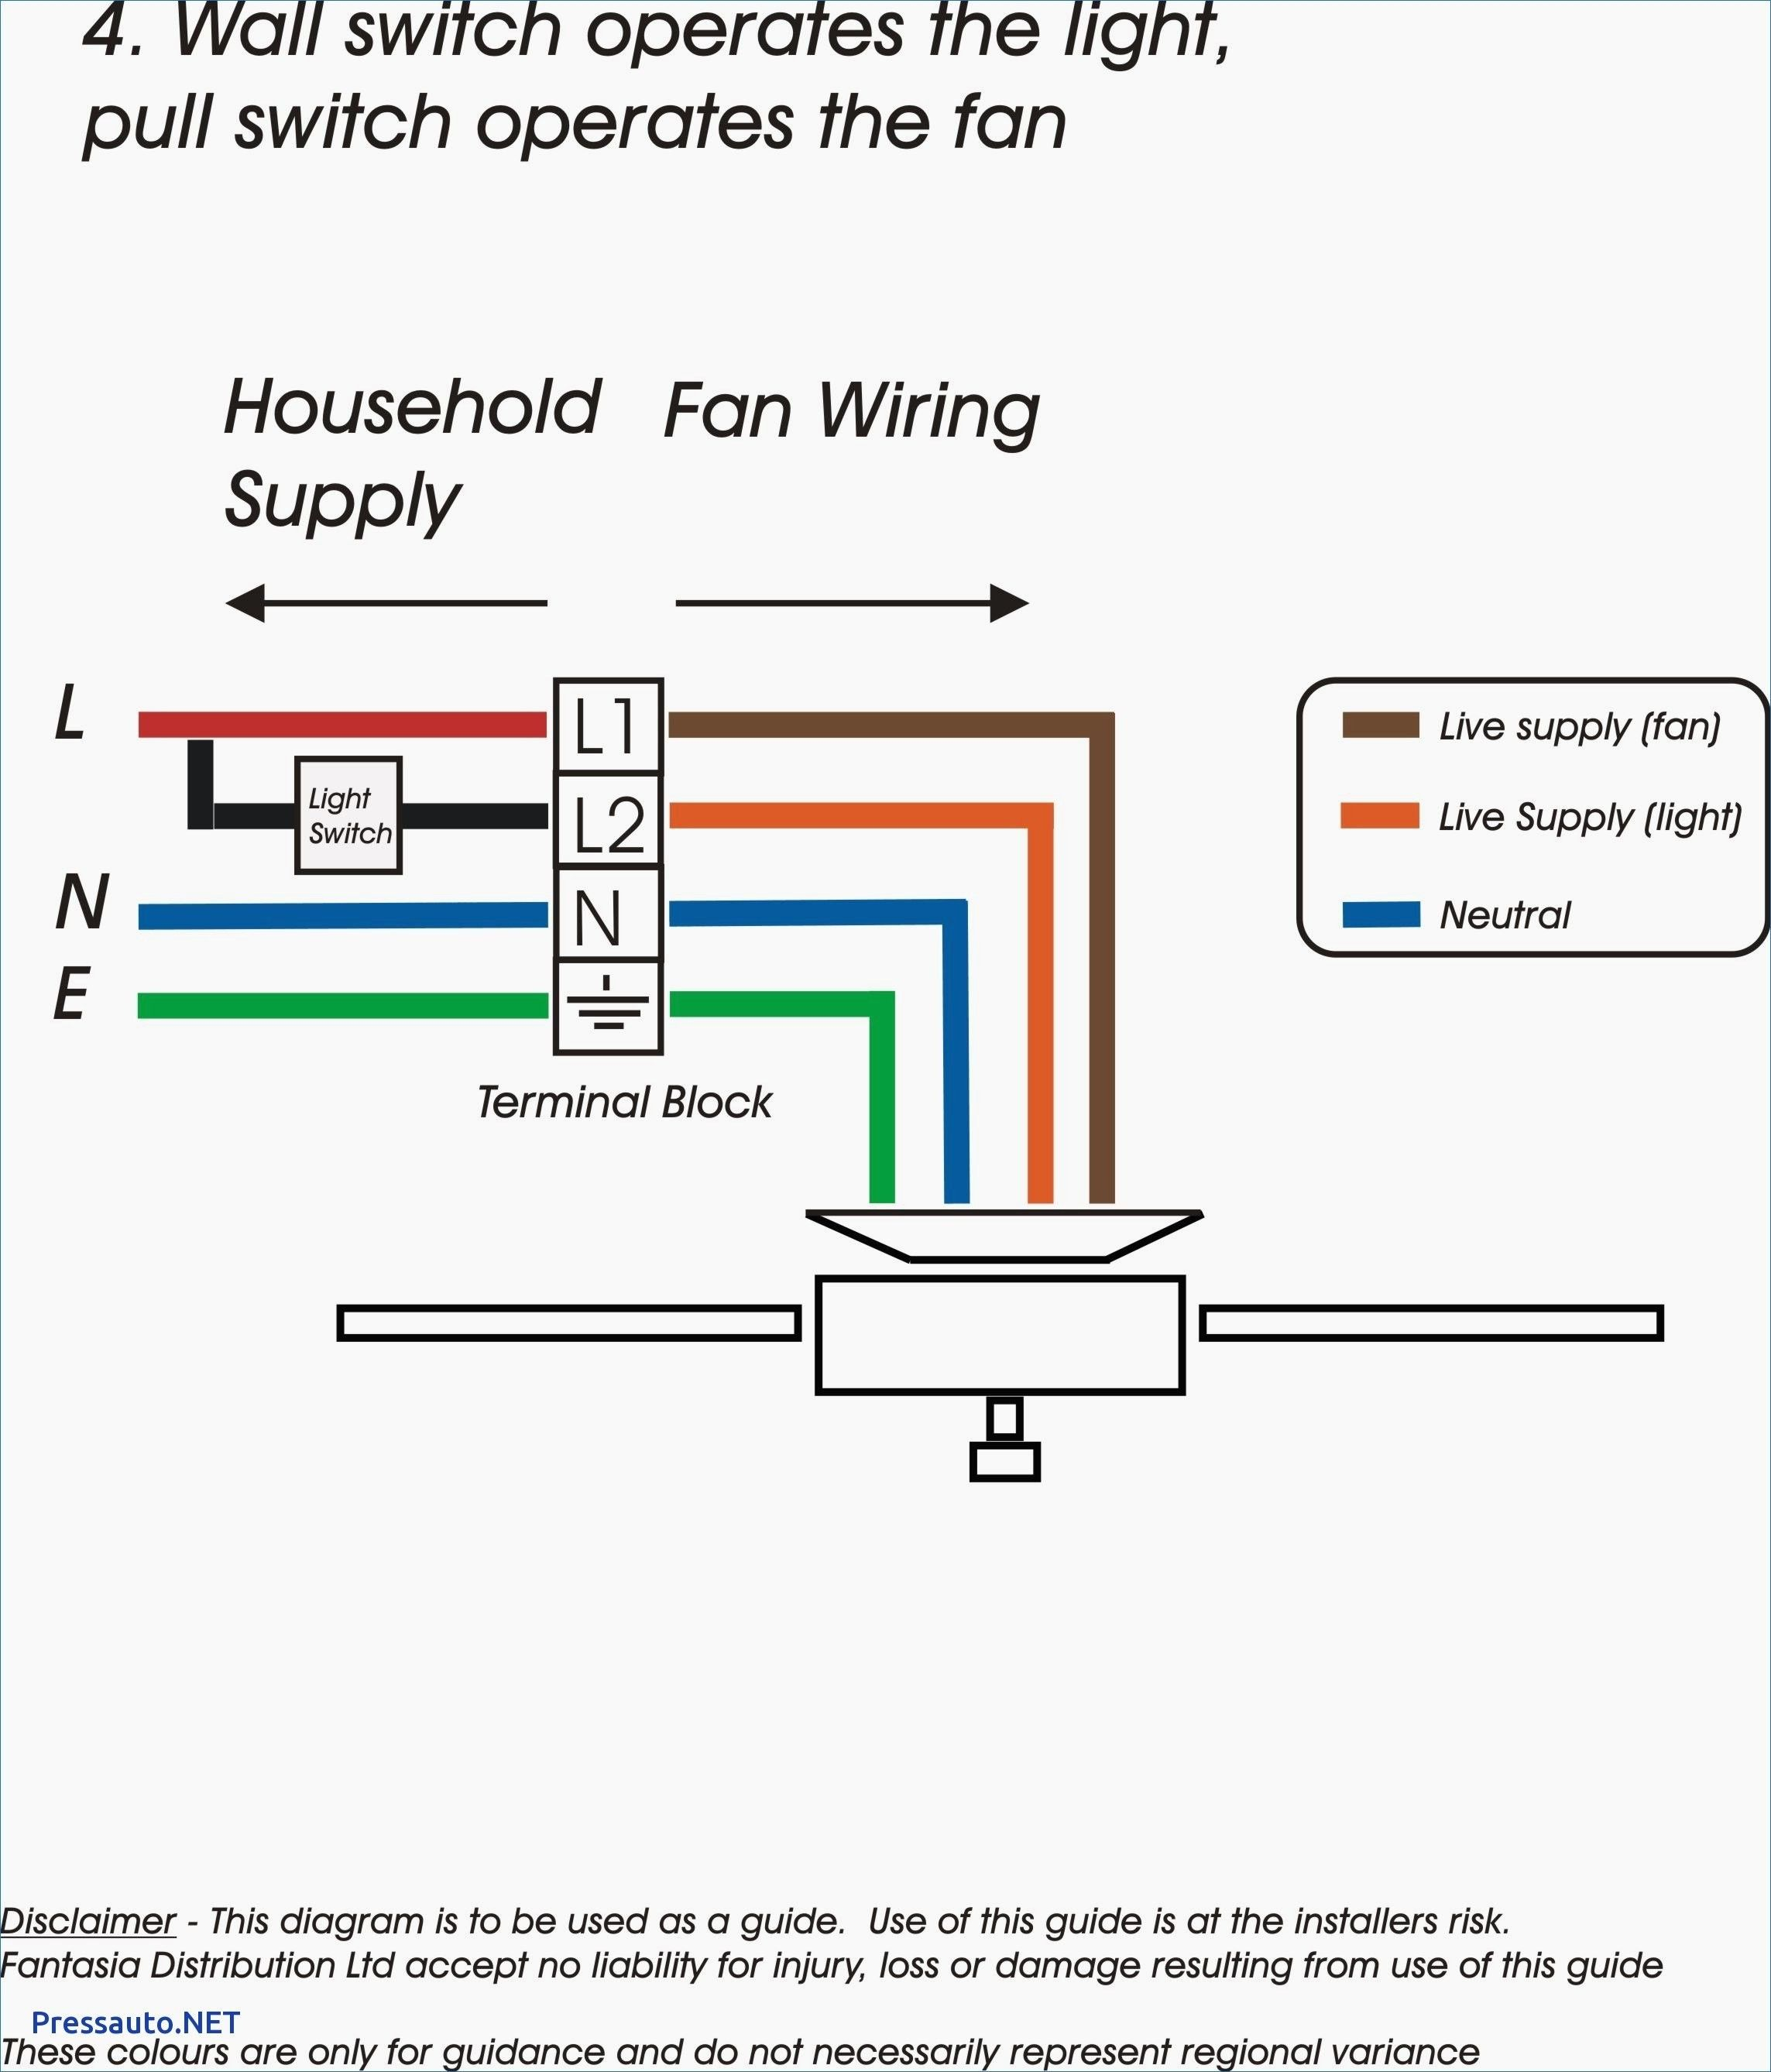 Lovely Wiring Diagram For Double Light Switch Uk Diagrams Digramssample Diagramimages Wiringdiagr Ceiling Fan Switch Ceiling Fan Wiring Light Switch Wiring